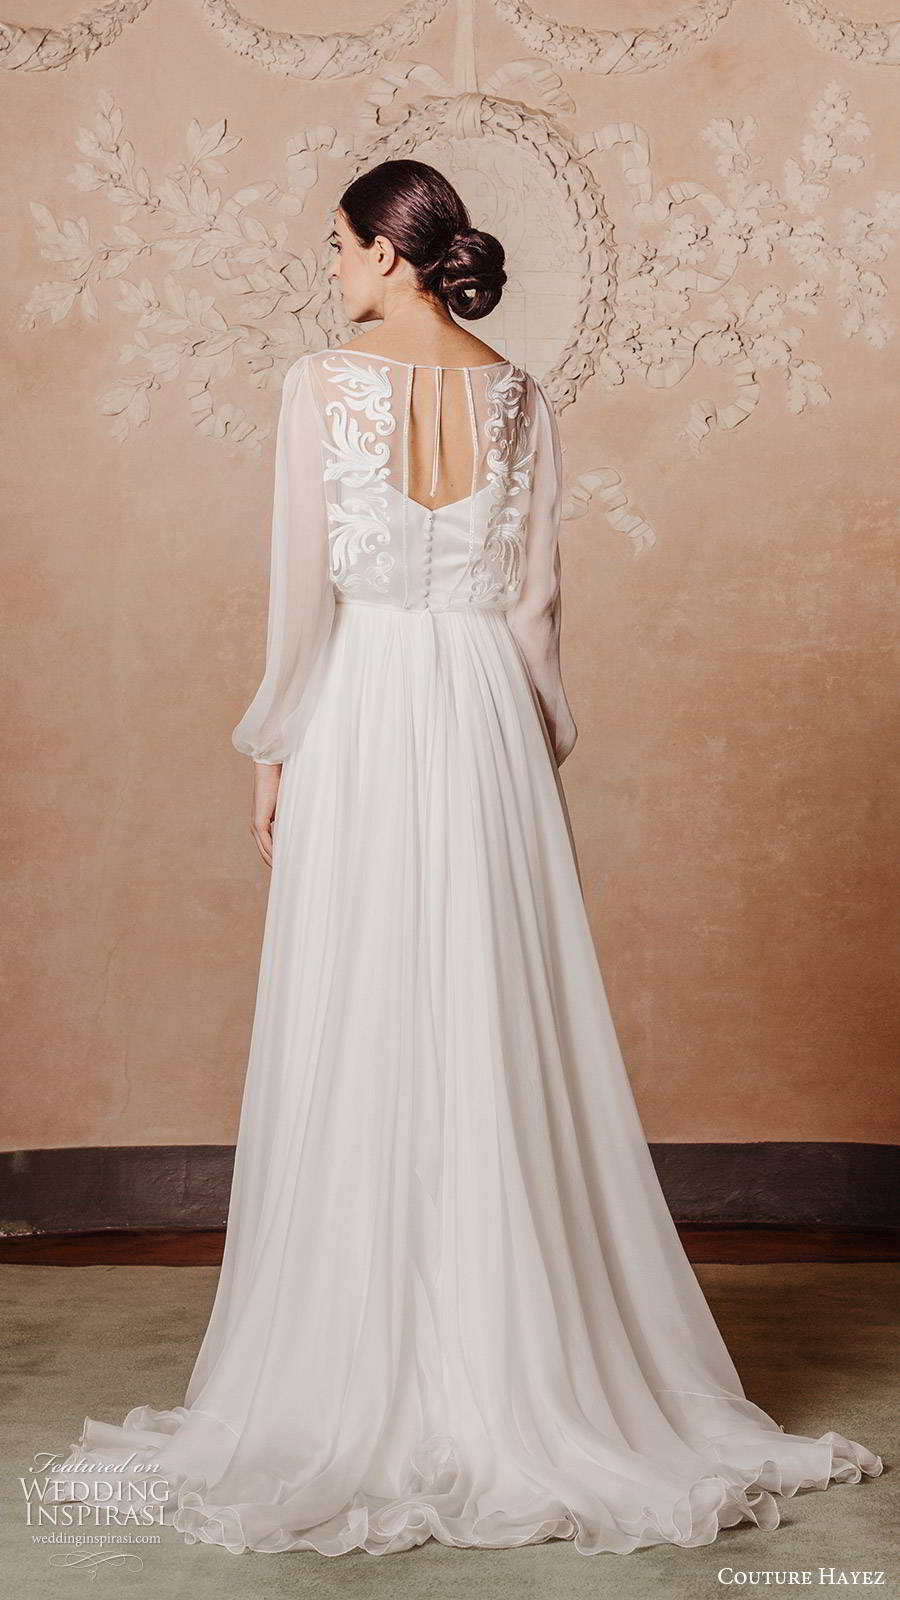 couture hayez 2020 bridal sheer bishop sleeves bateau neckline embellished bodice a line wedding dress (5) boho chic romantic chapel train bv